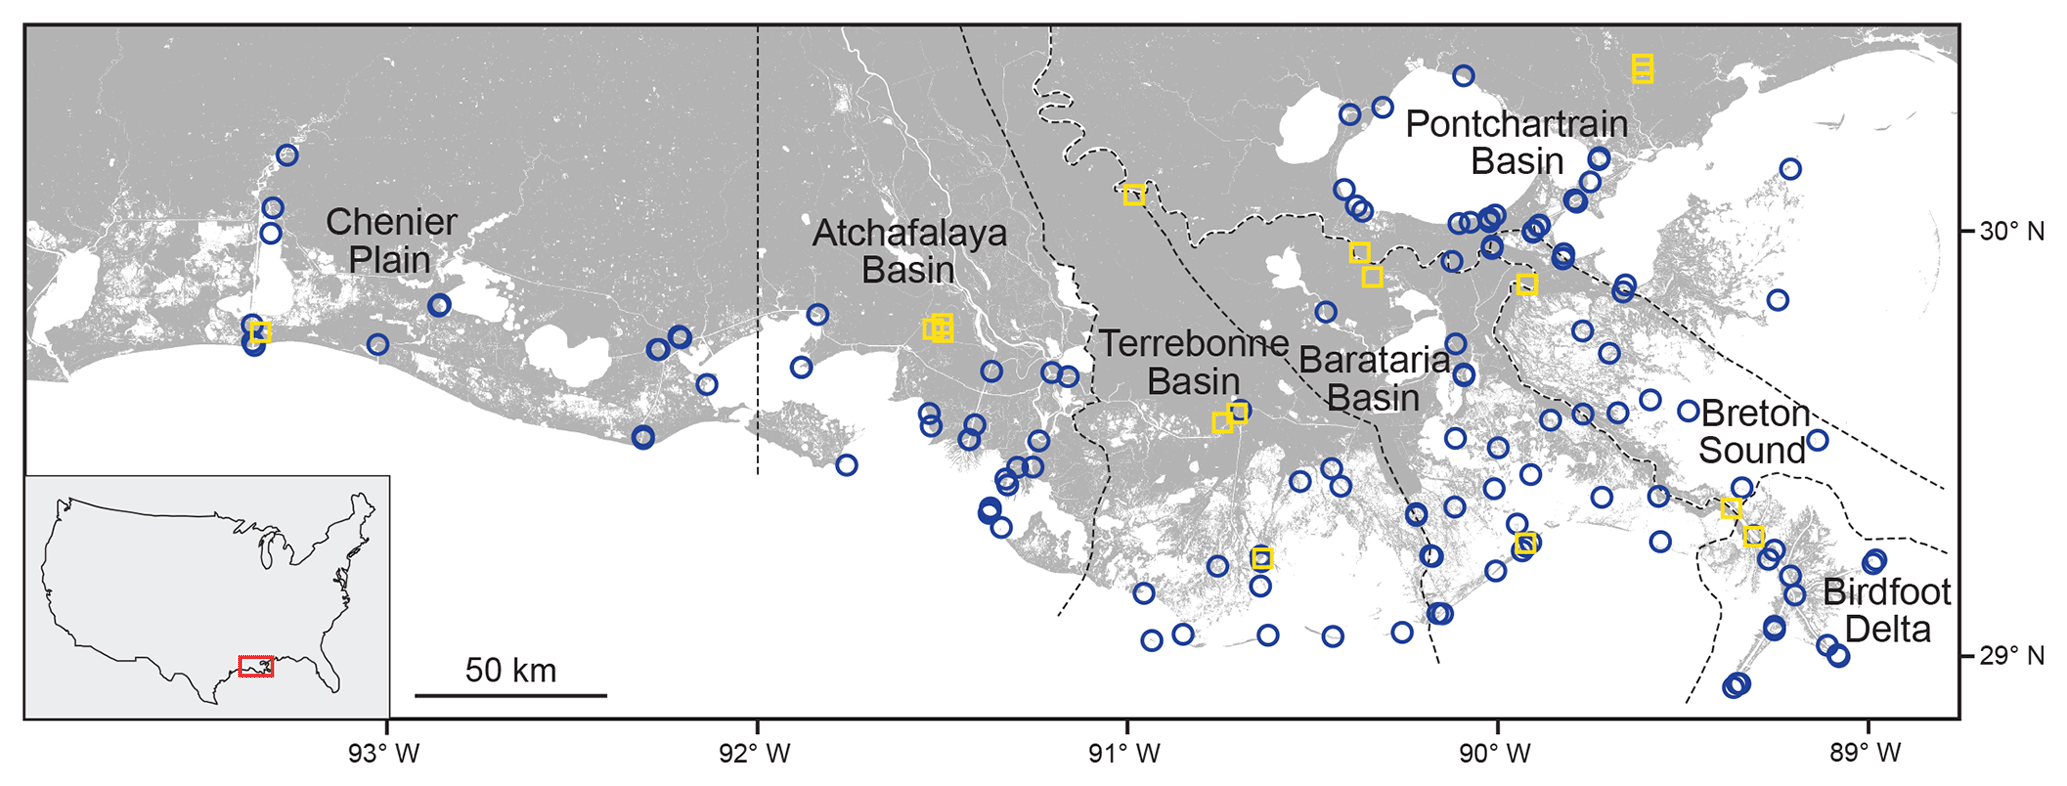 OS - Measuring rates of present-day relative sea-level rise in low